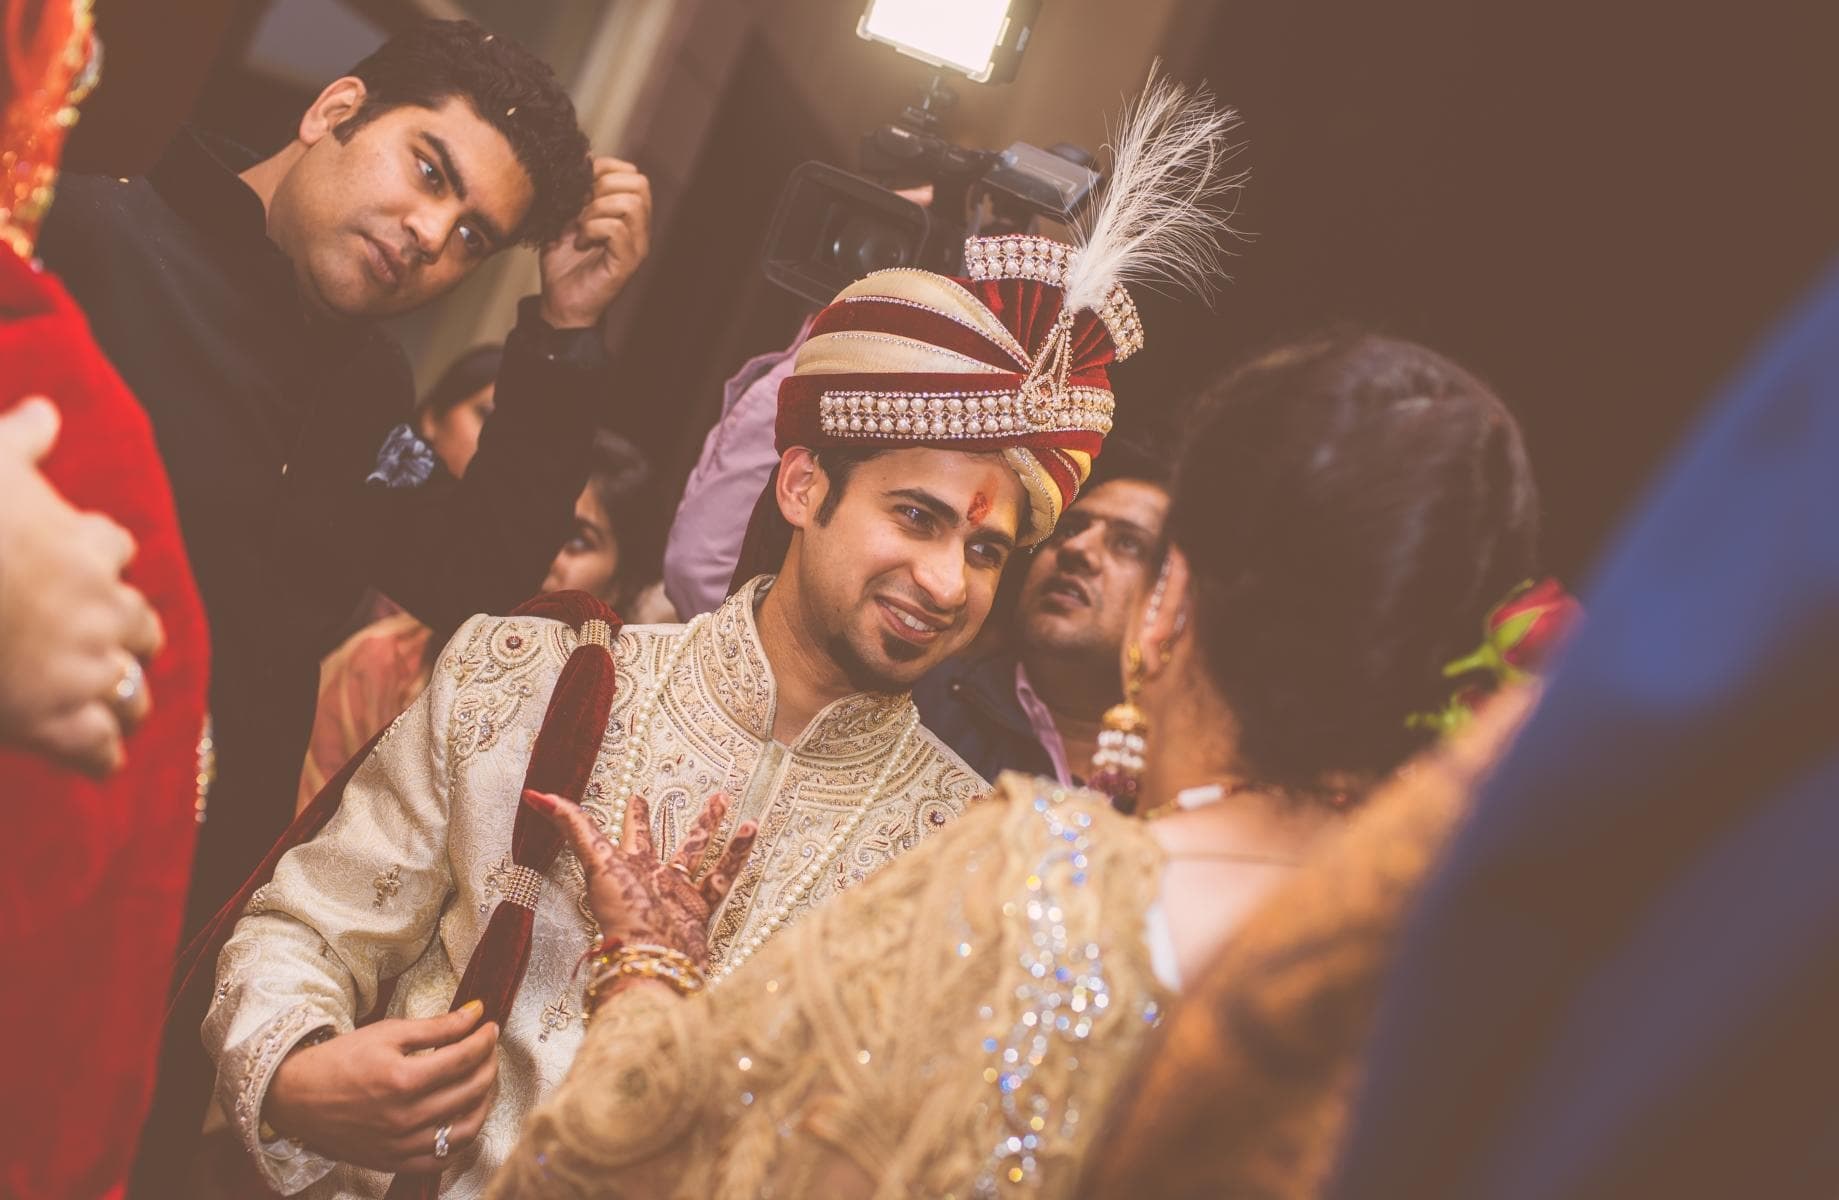 groom with turban:kuntal mukherjee photography